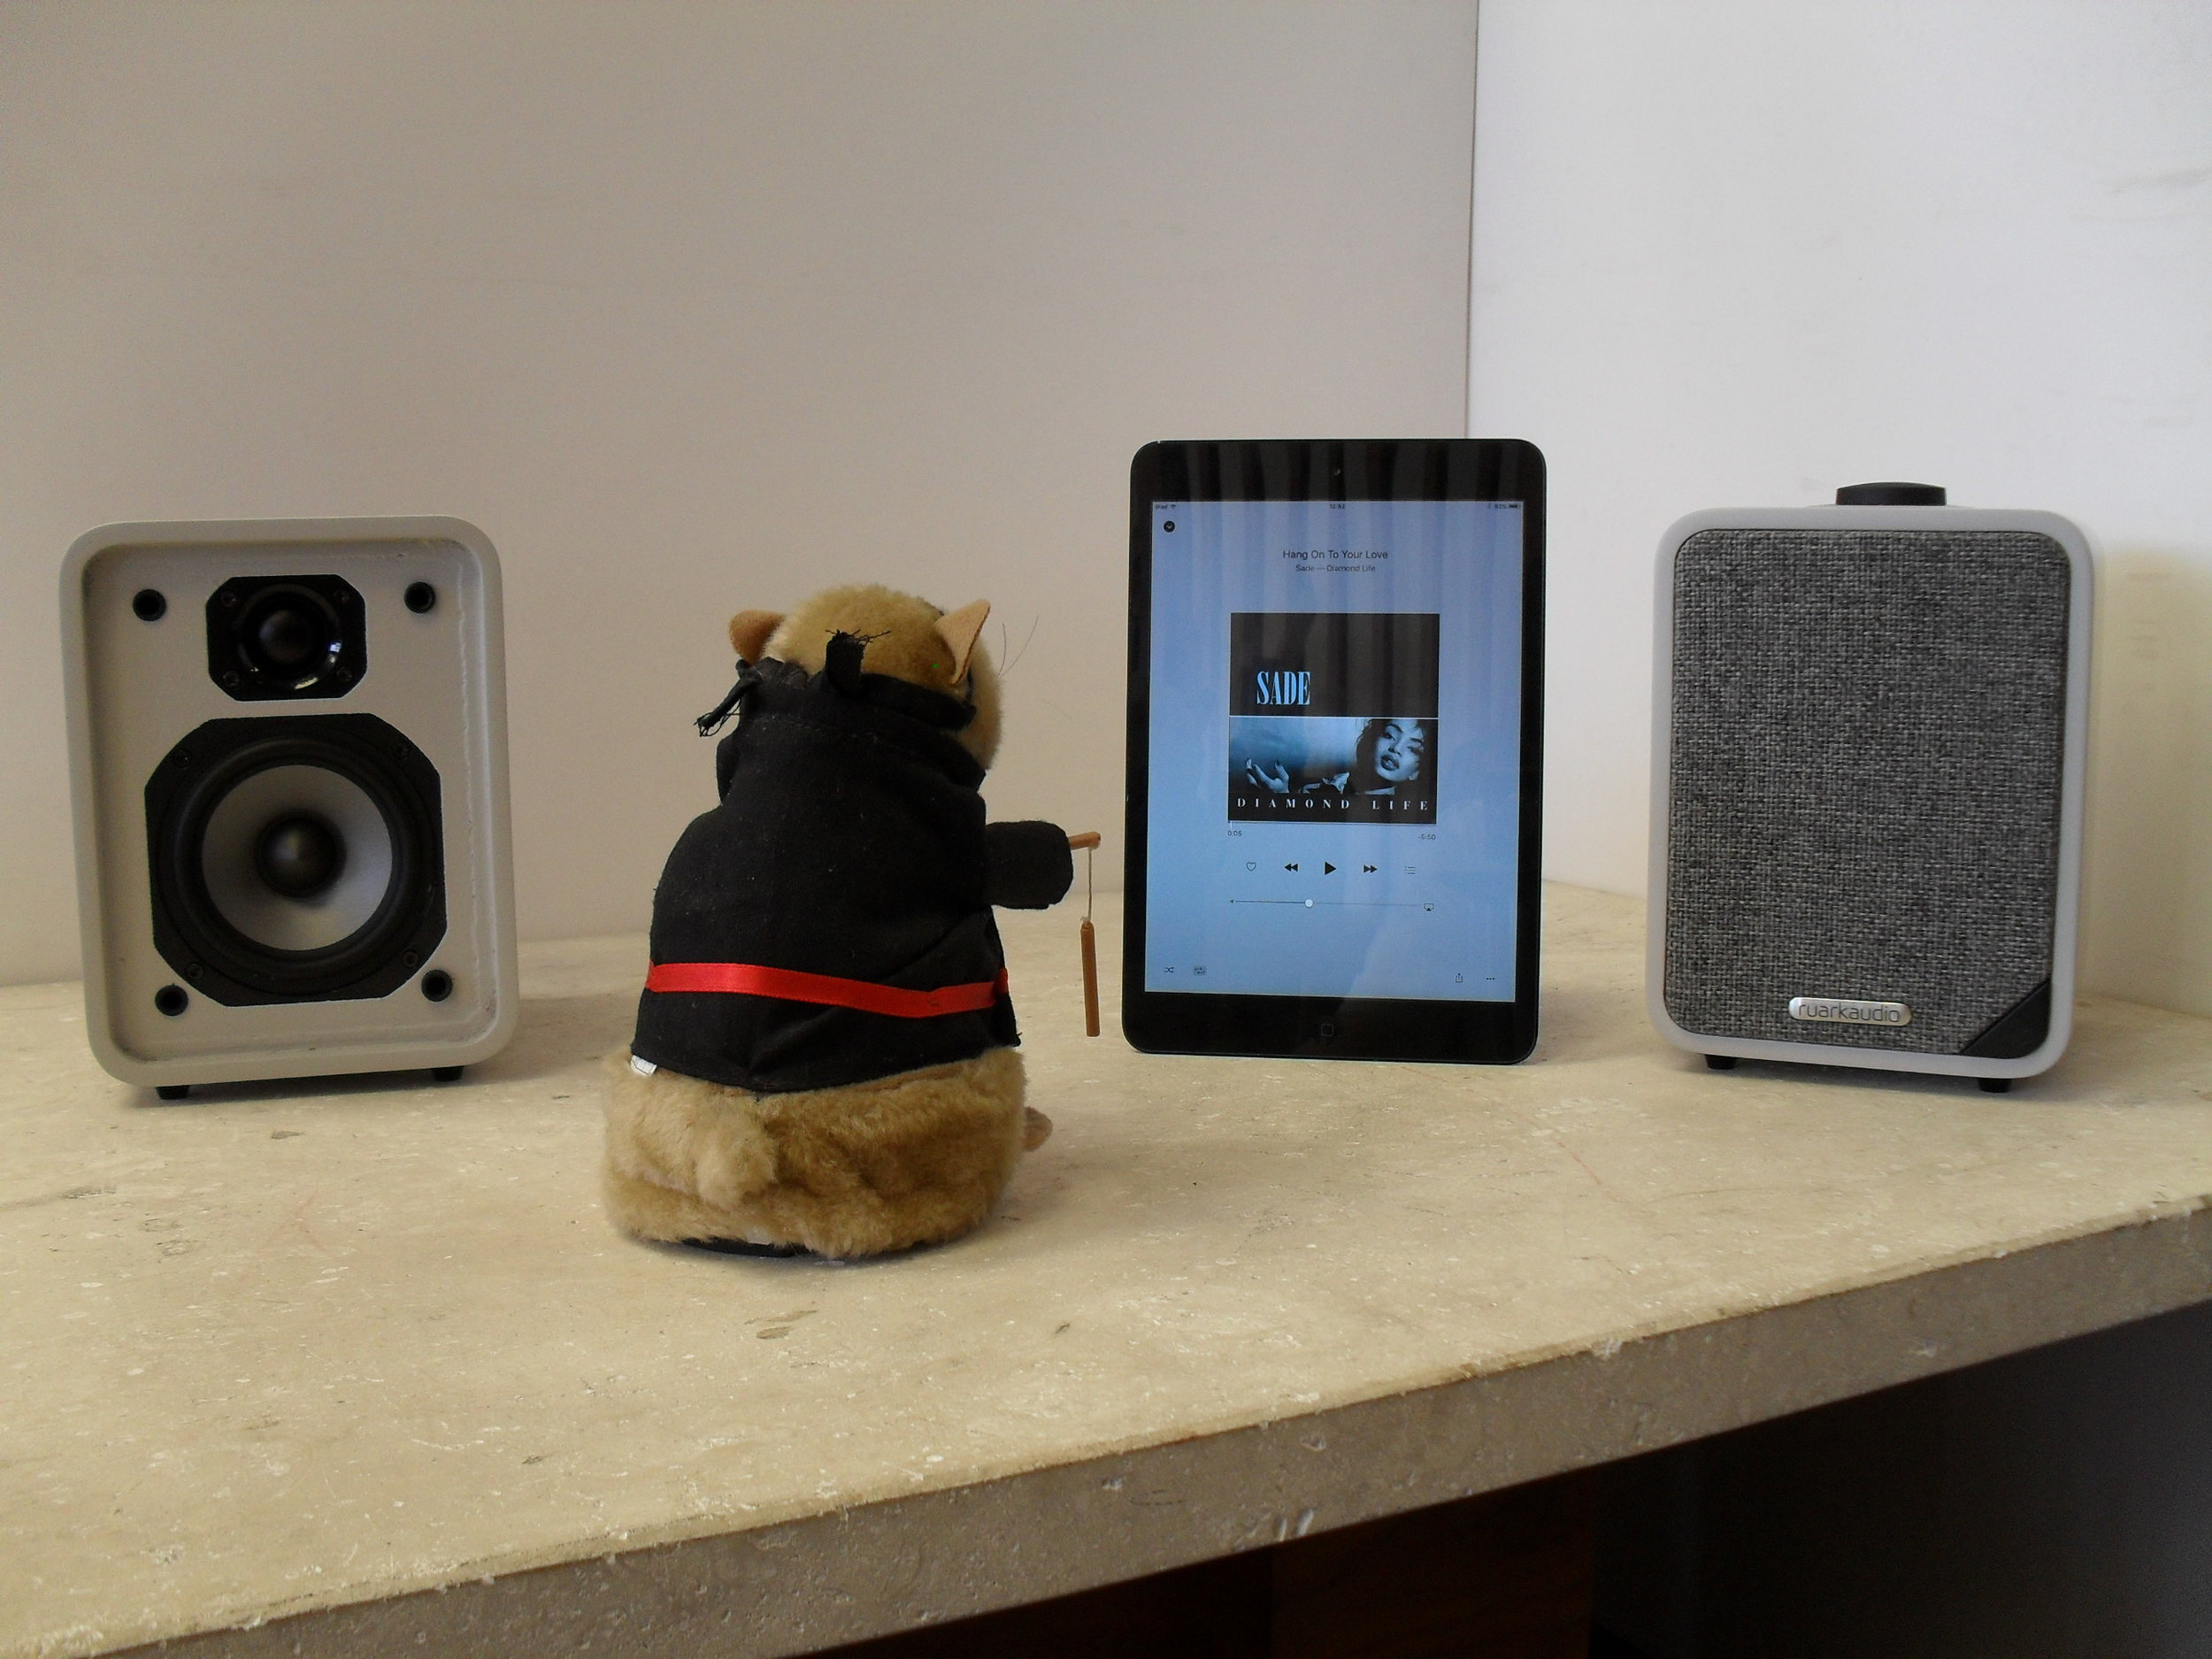 KungFu Hamster listening to Sade... he's a smooth operator!